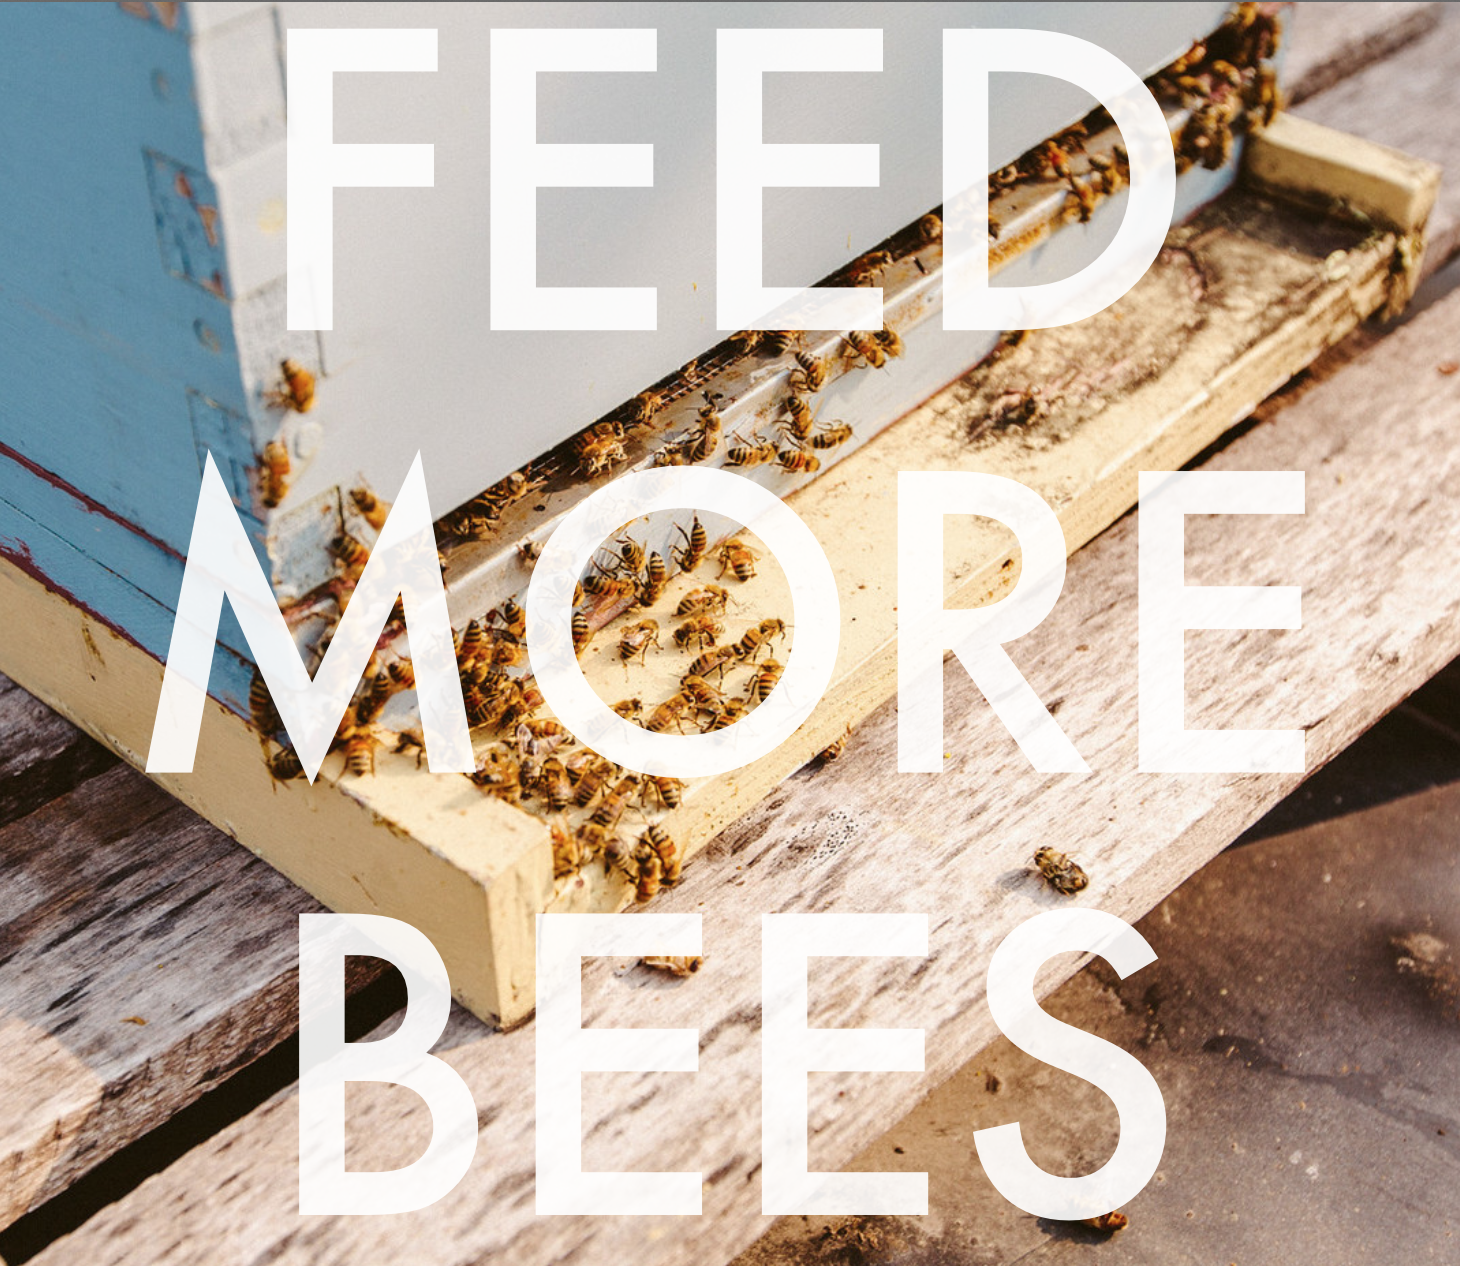 Use the hashtag #feedmorebees to have your favorite pollinator friendly plants added to our guide!